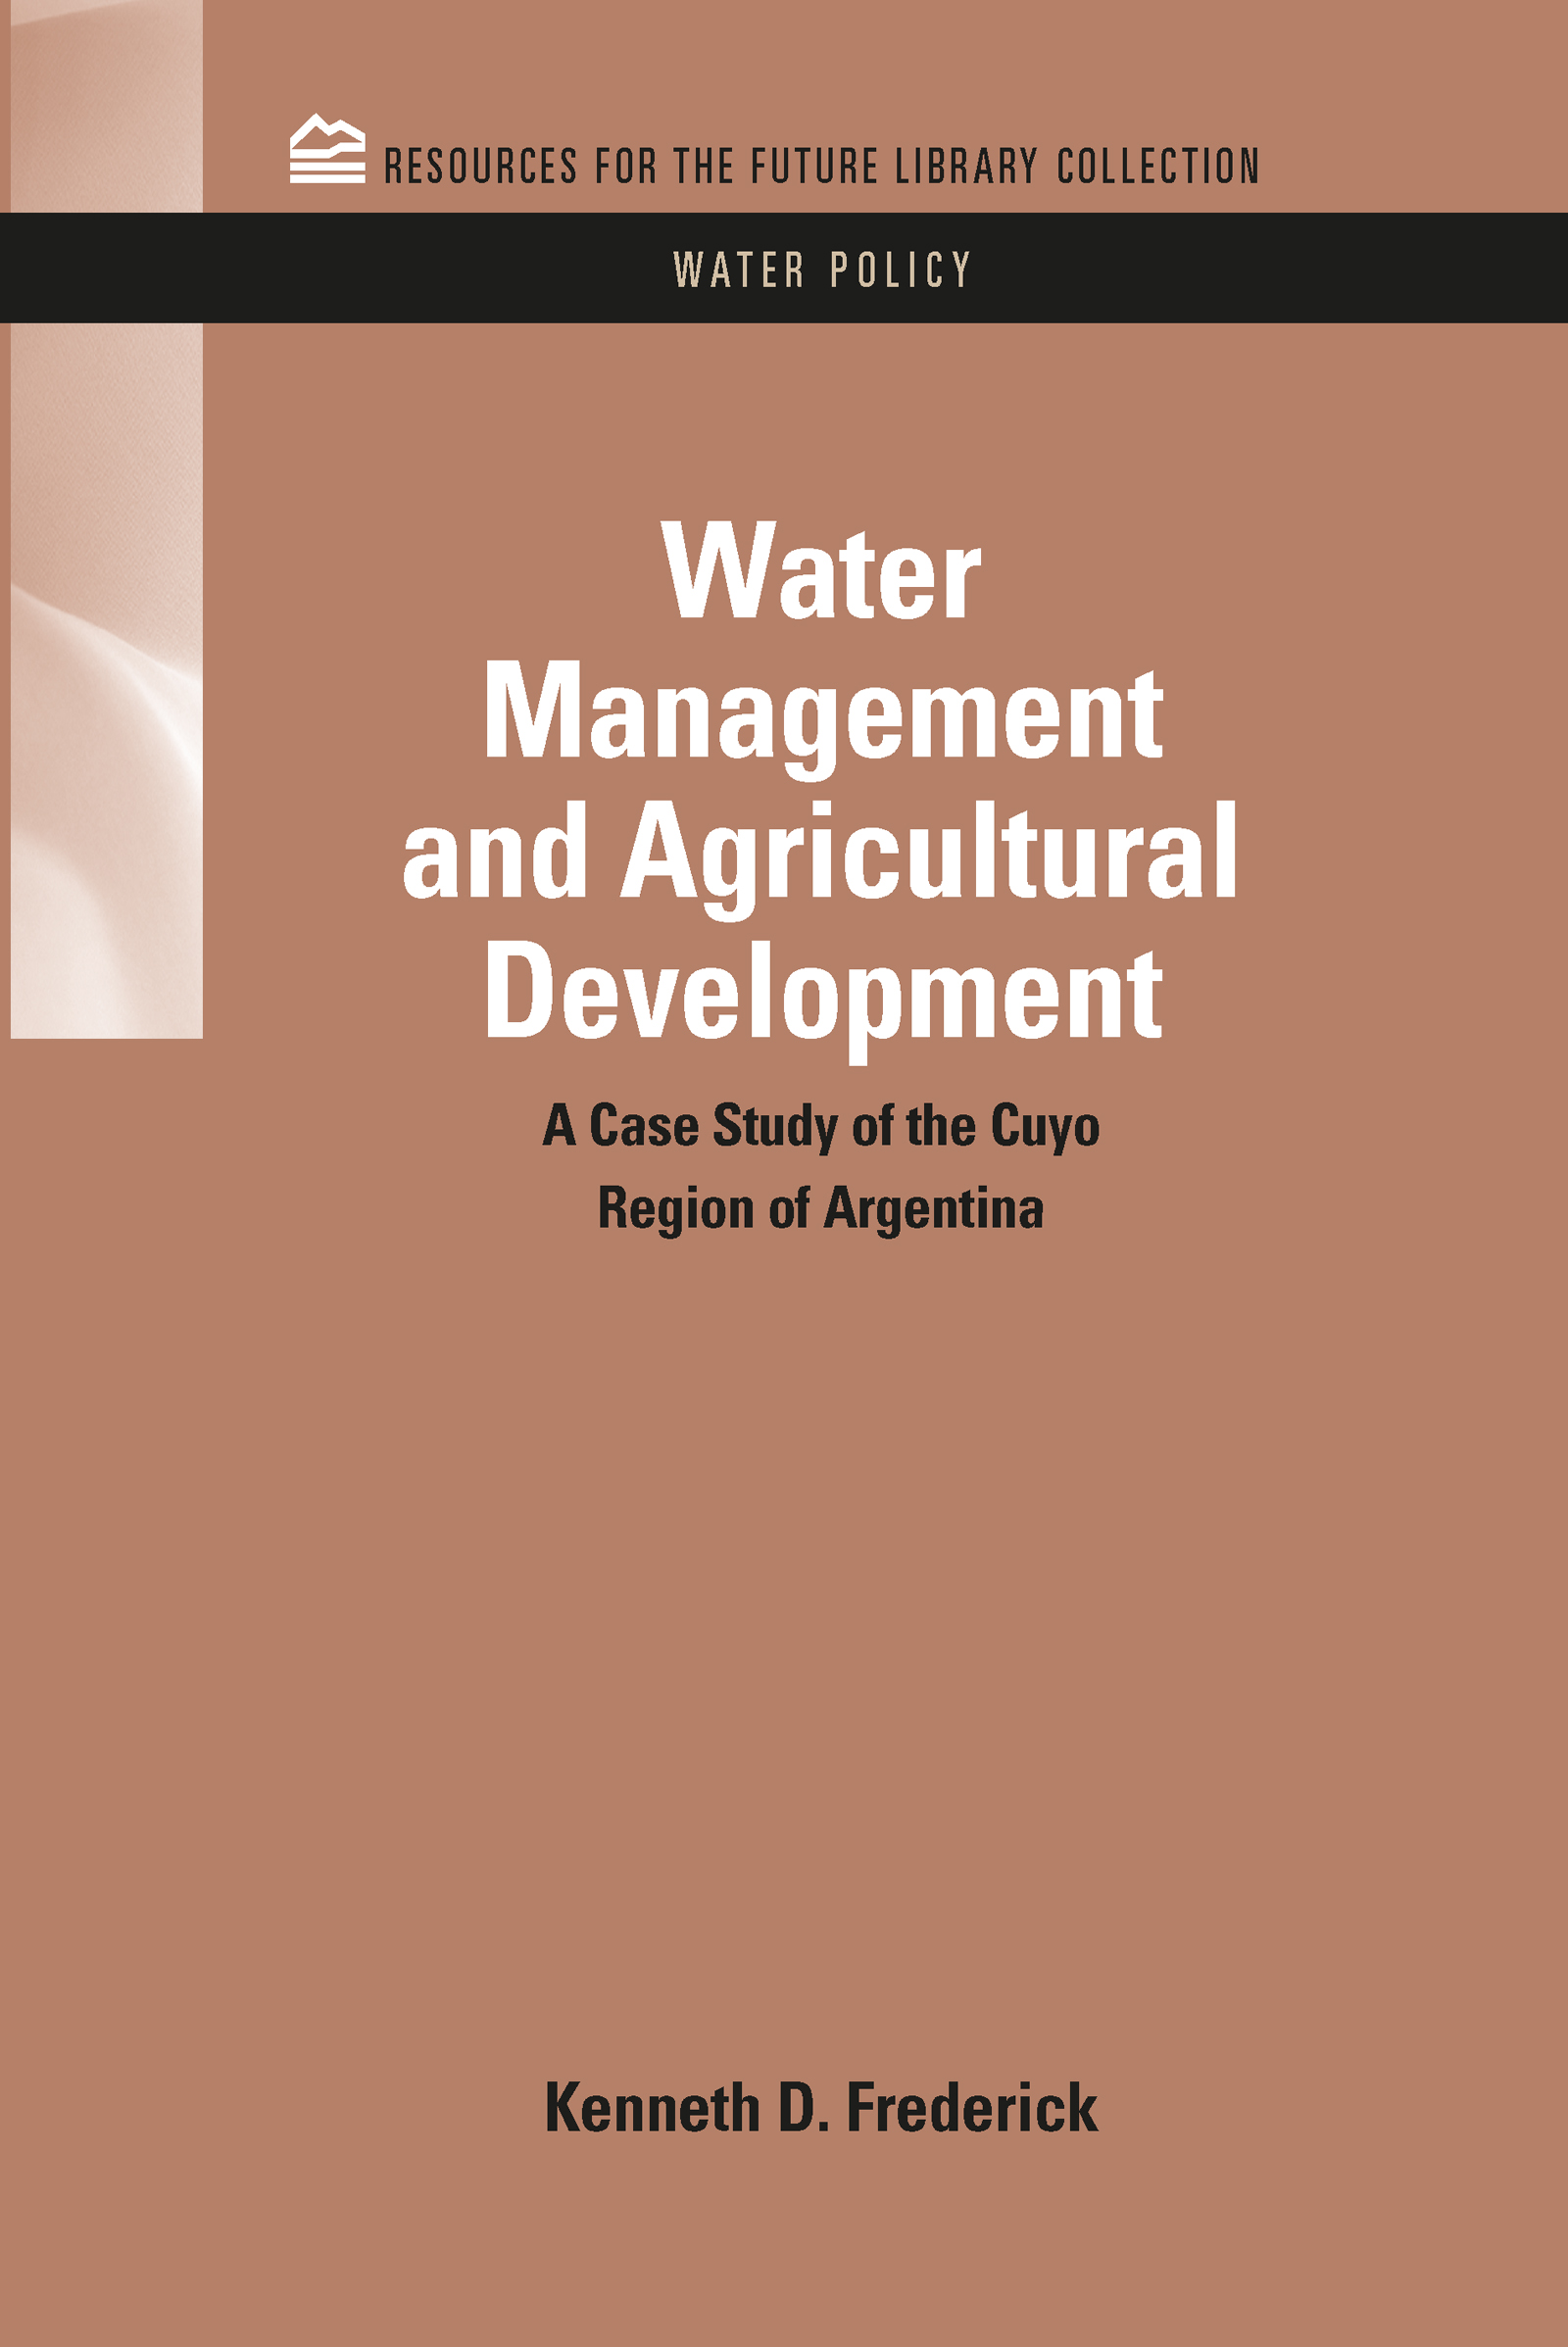 FARM LEVEL IMPLICATIONS OF RISING WATER COSTS AND ALTERNATIVE GOVERNMENT POLICIES